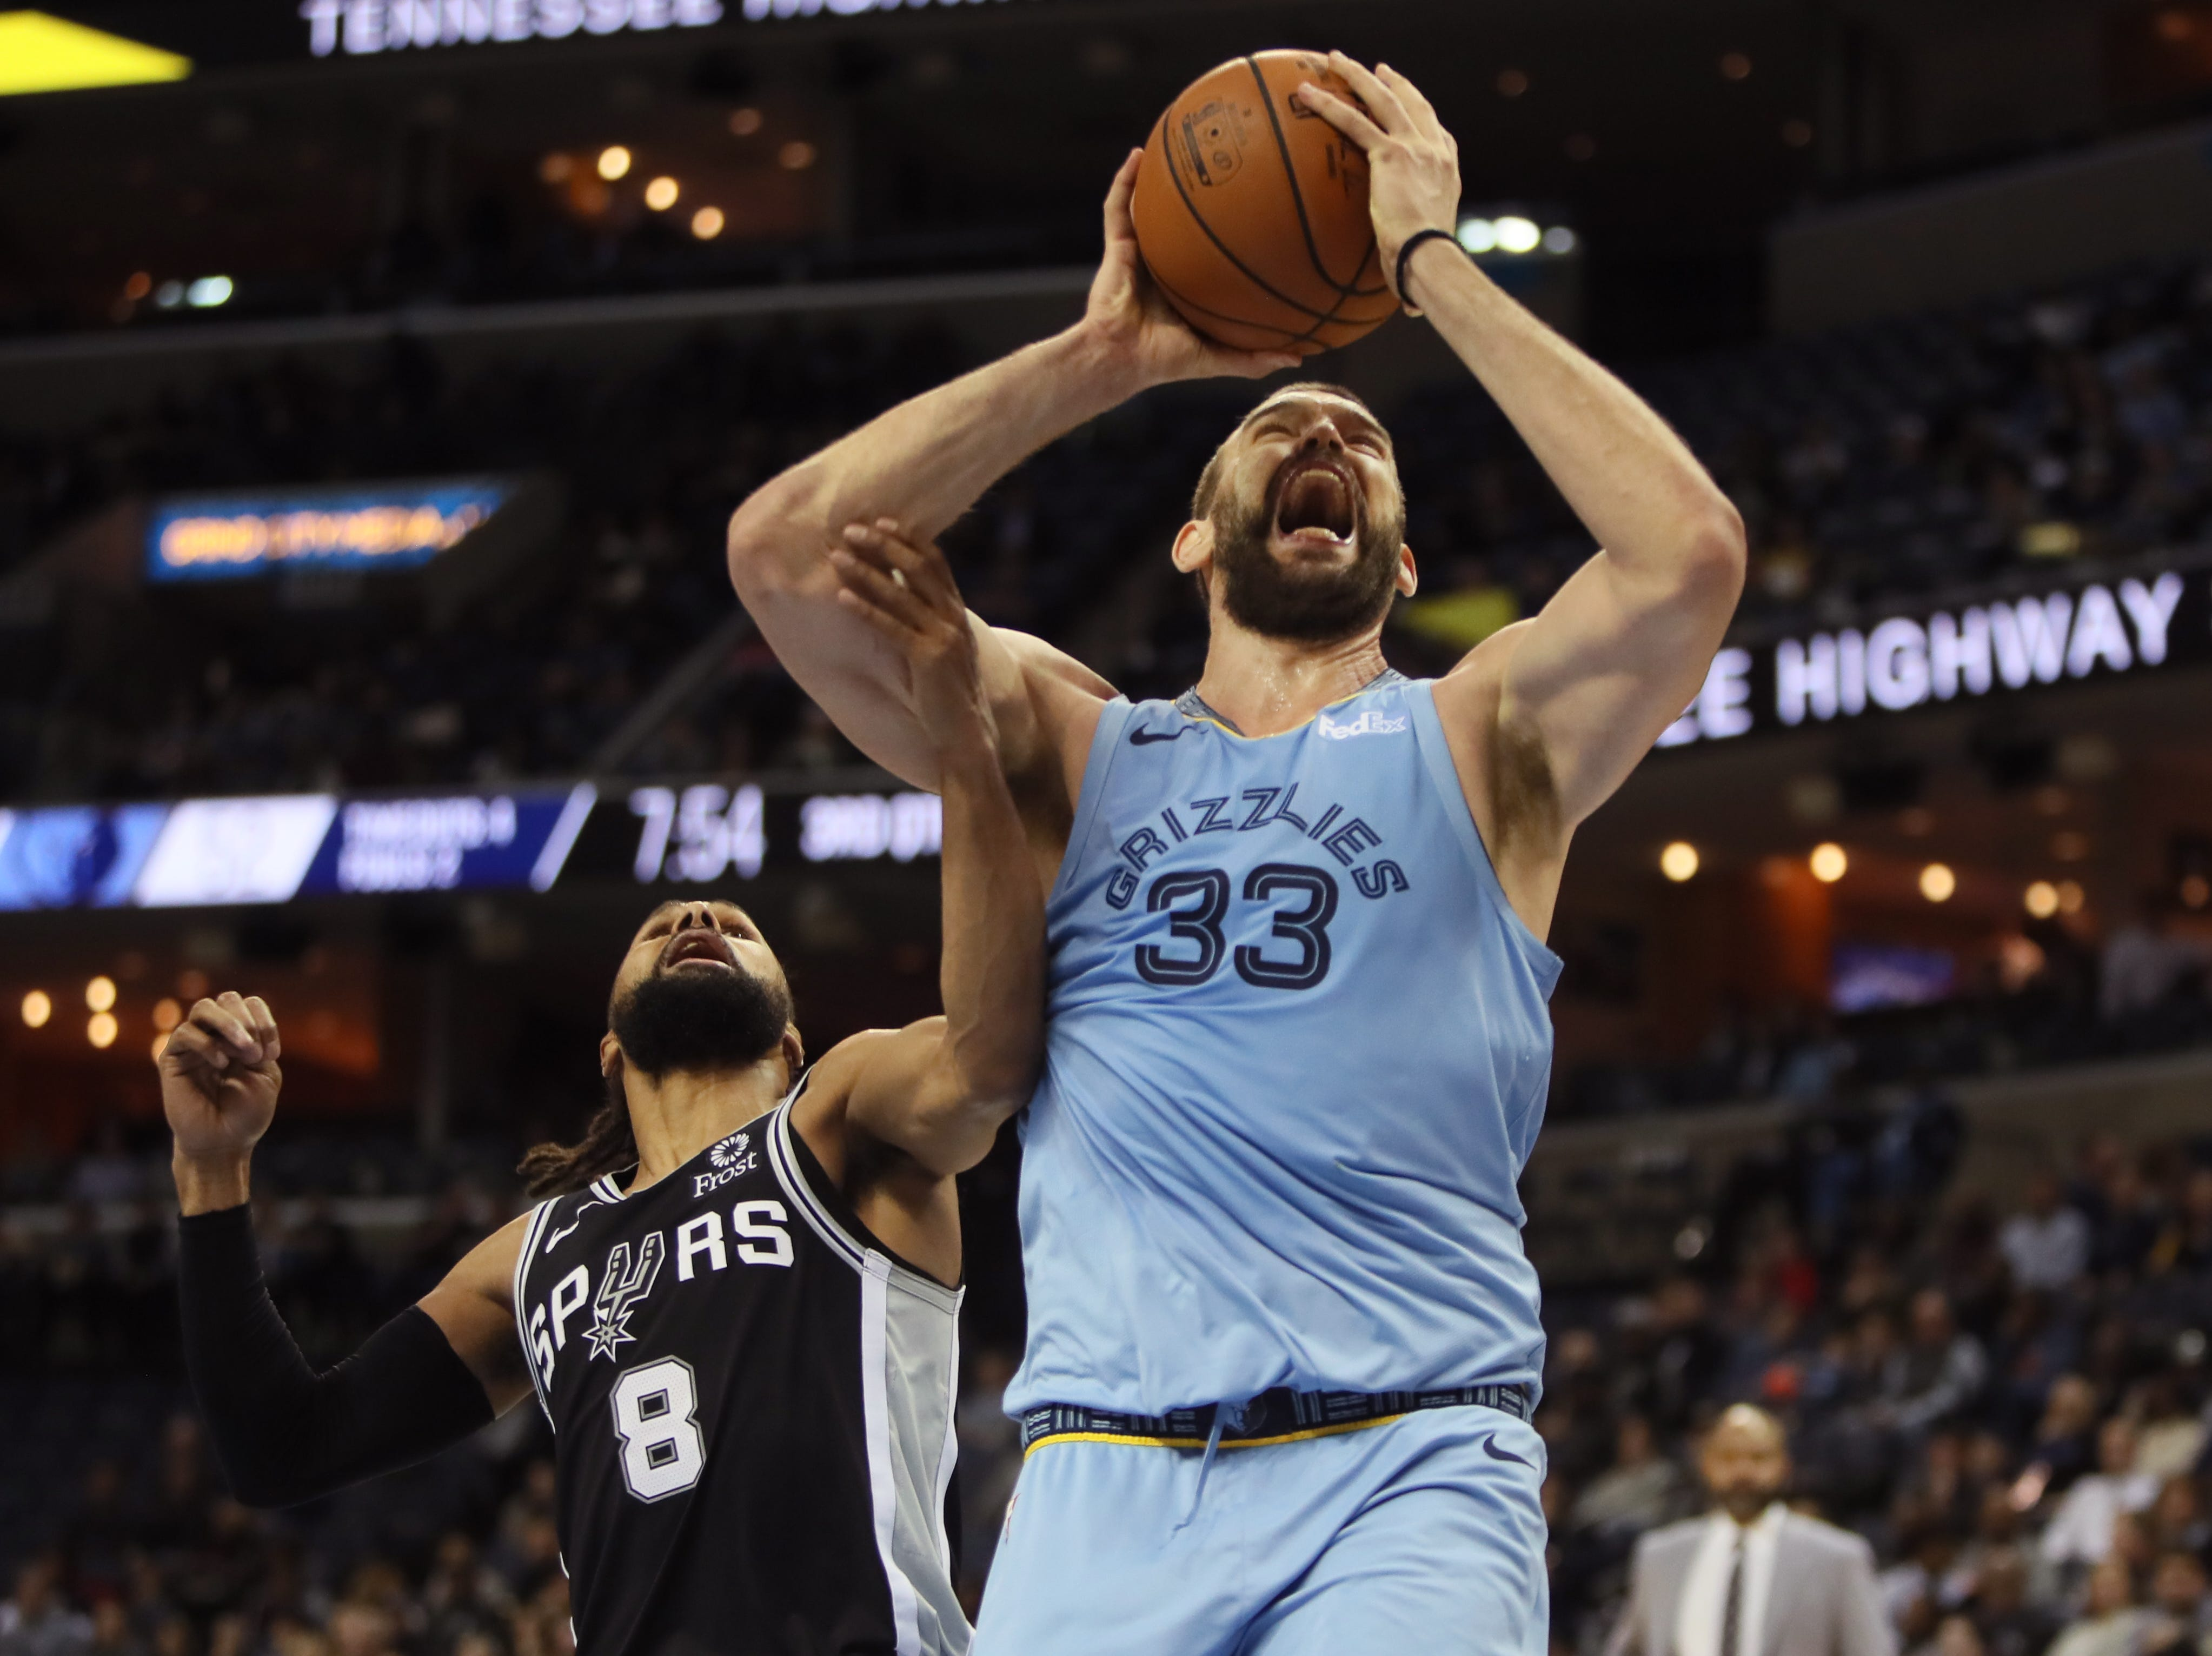 Memphis Grizzlies center Marc Gasol makes a shot while being fouled by San Antonio Spurs defender 	Patty Mills during their game at the FedExForum on Wednesday, Jan. 9, 2019.